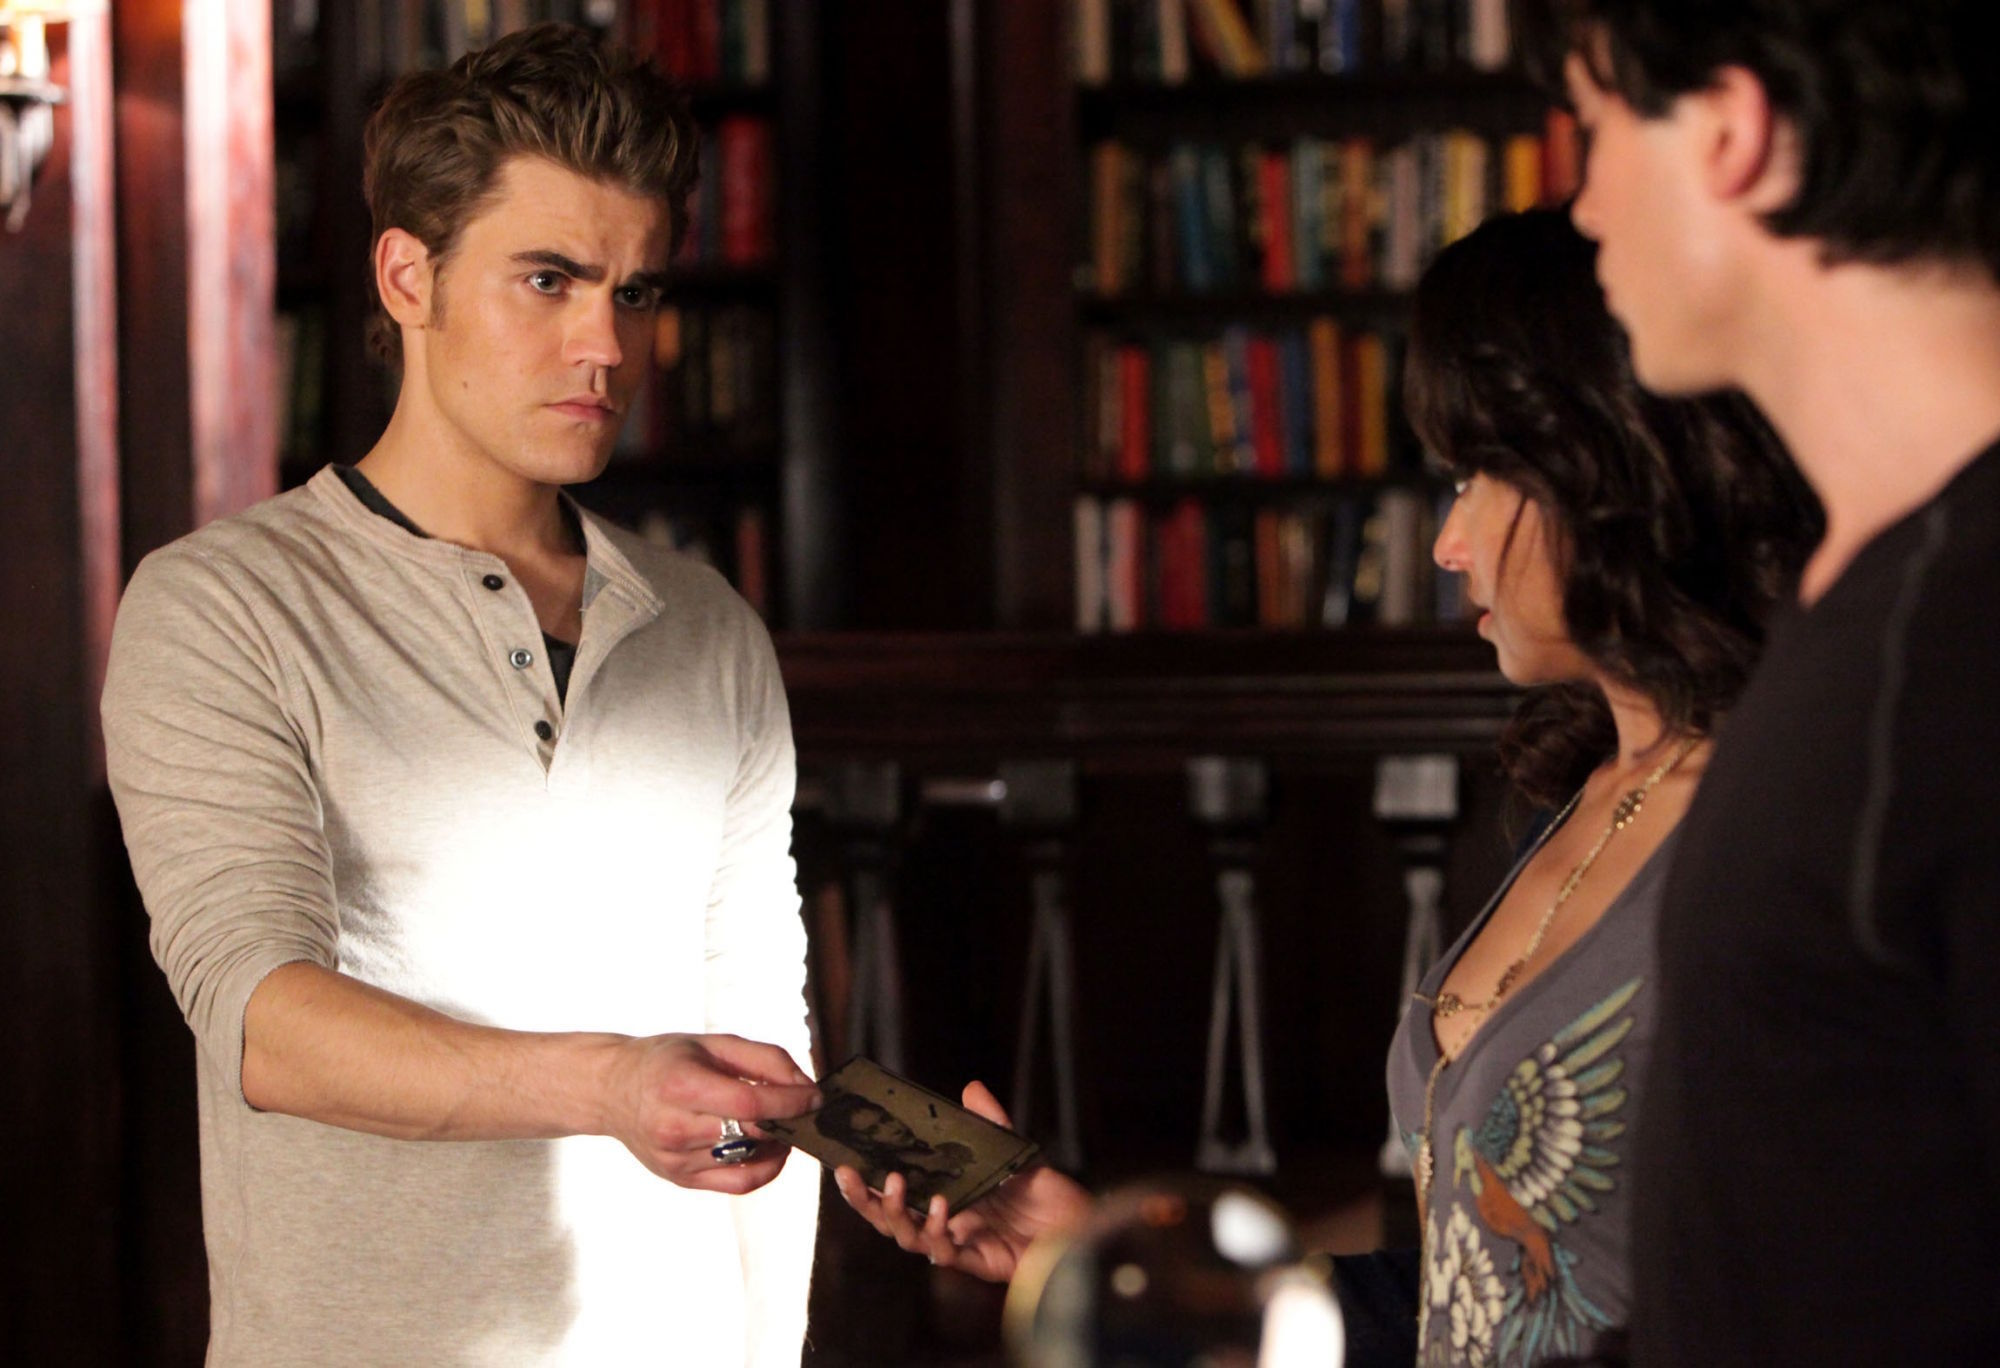 http://images4.fanpop.com/image/photos/16900000/2-10-The-Sacrifice-the-vampire-diaries-16900271-2000-1368.jpg